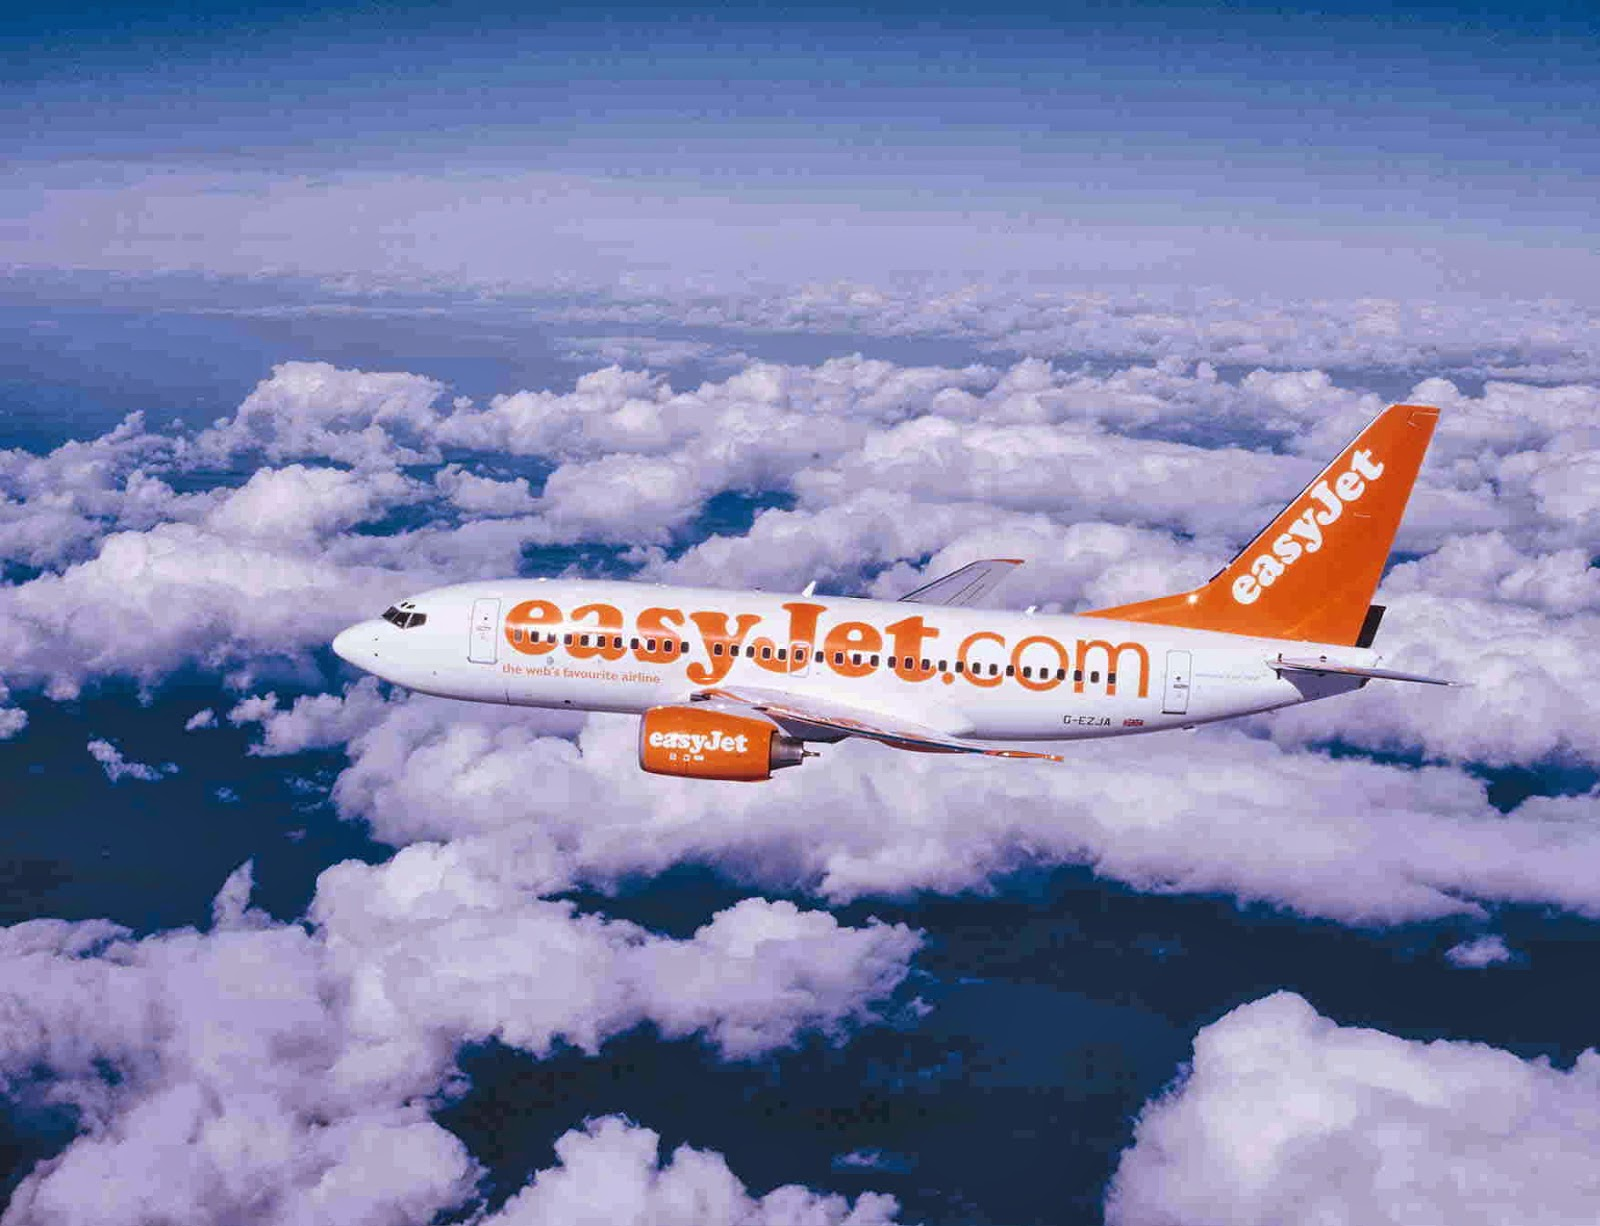 easyjet weaknesses Alim proposed a strategic plan for easyjet according to its strengths, weaknesses and the opportunities and threats in the airline market.